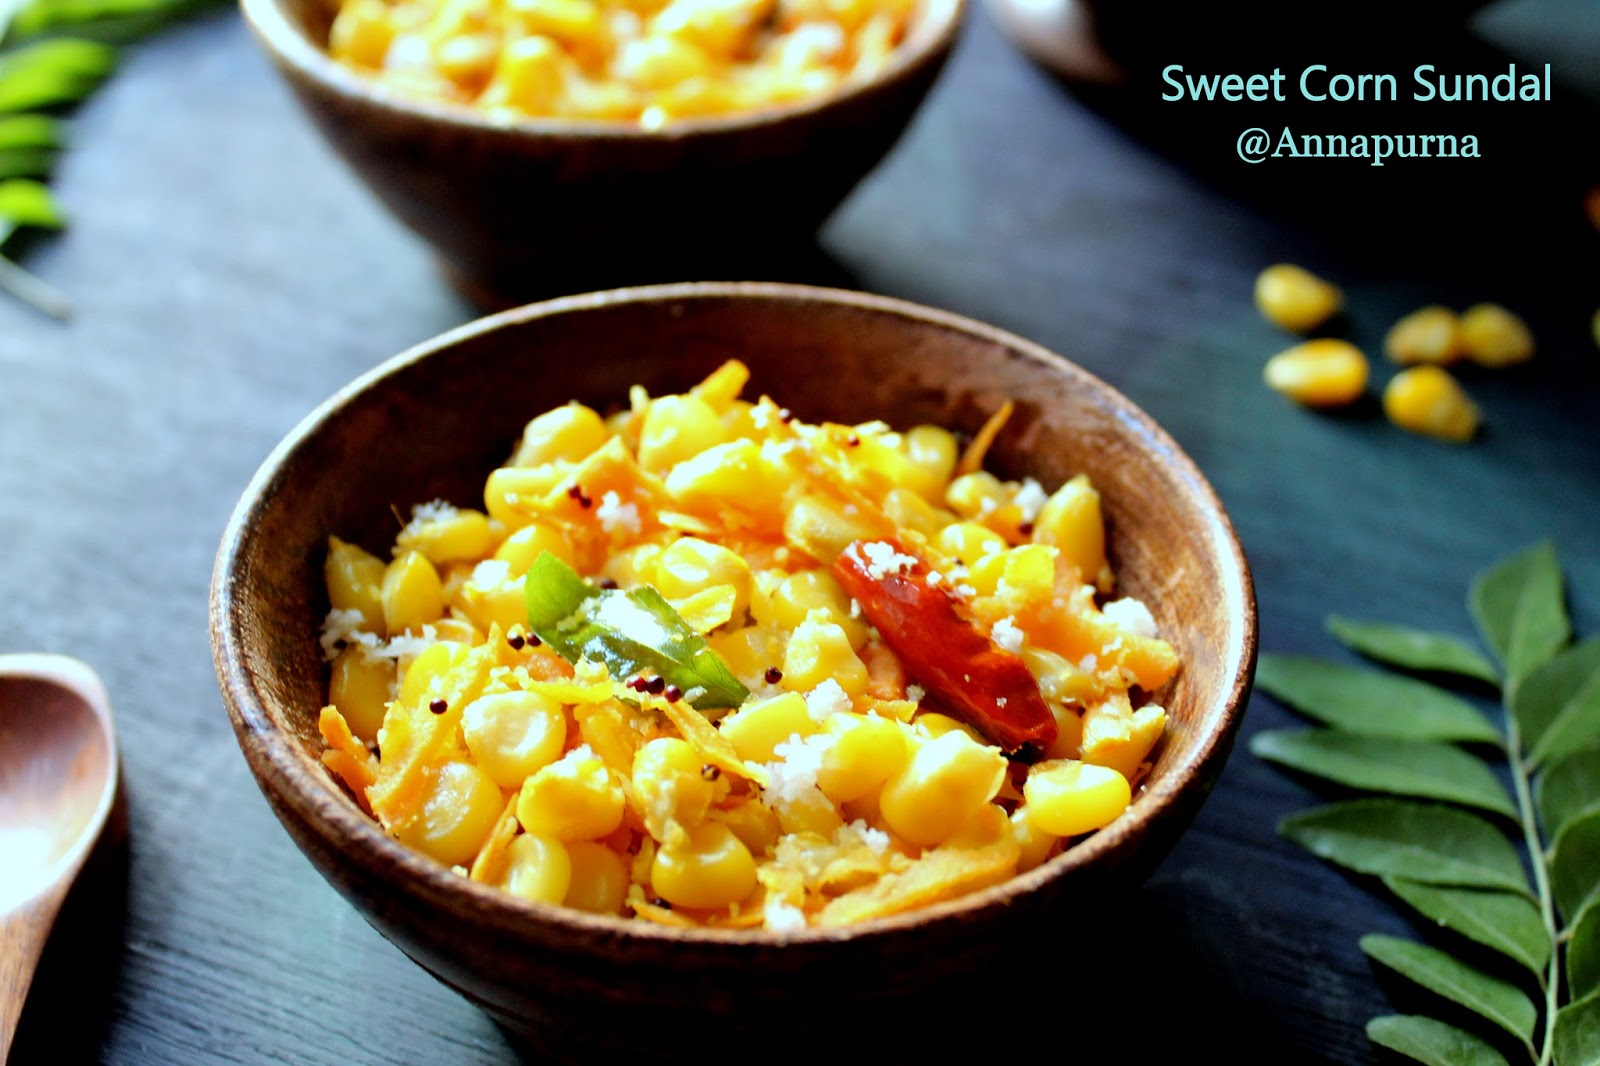 Annapurna sweet corn sundal south indian sweet corn salad recipe sundal is a south indian style salad usually prepared and served as prasadam during navratri different varieties of sundal can be made using different forumfinder Gallery